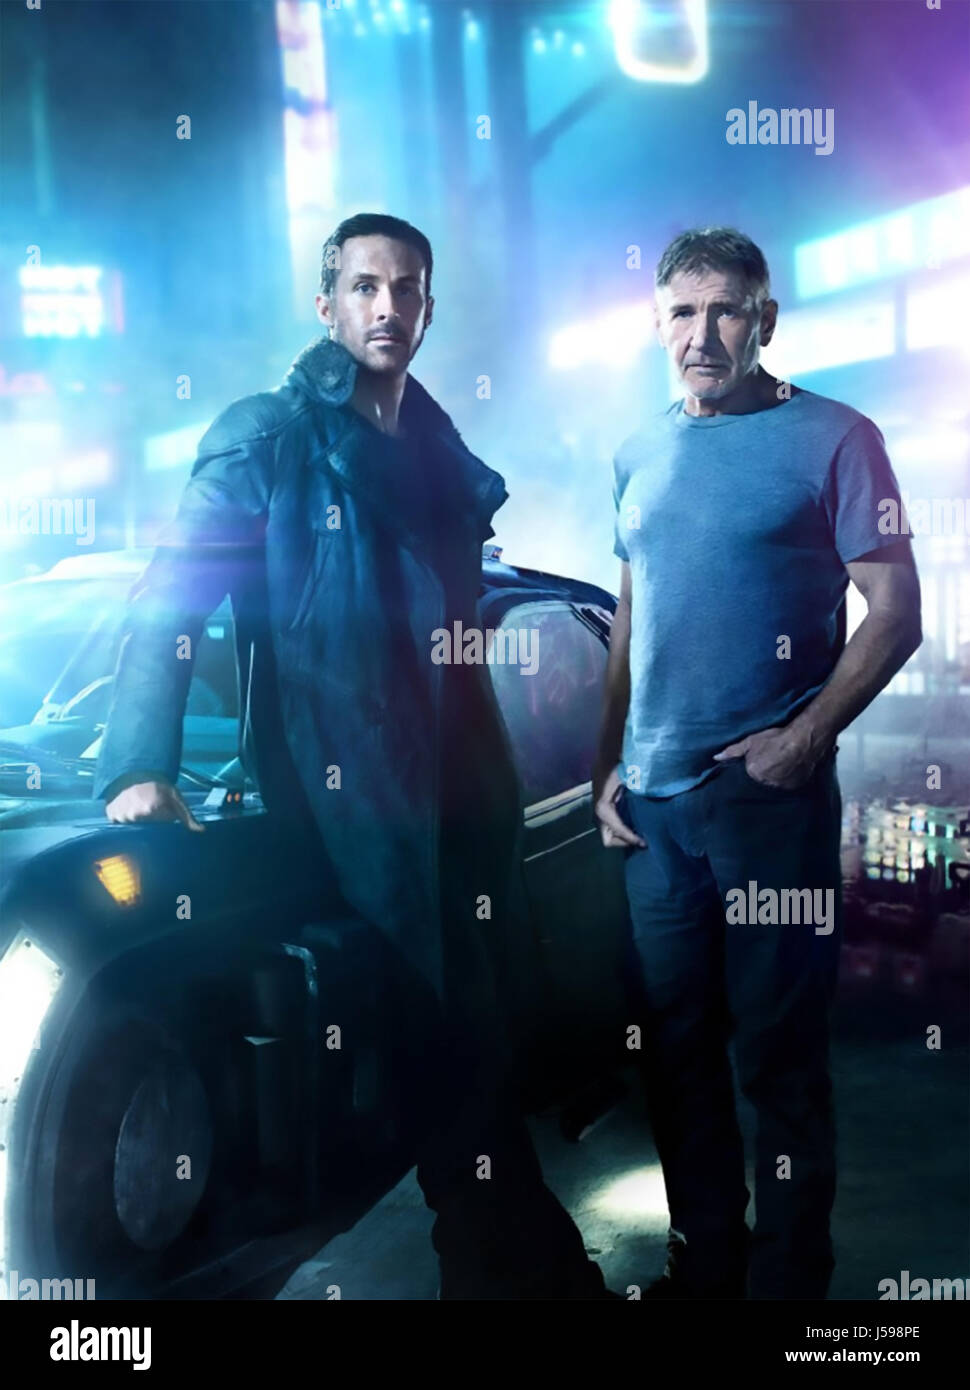 BLADE RUNNER 2049 -   2017 Columbia film with Ryan Gosling at left and Harrison Ford - Stock Image